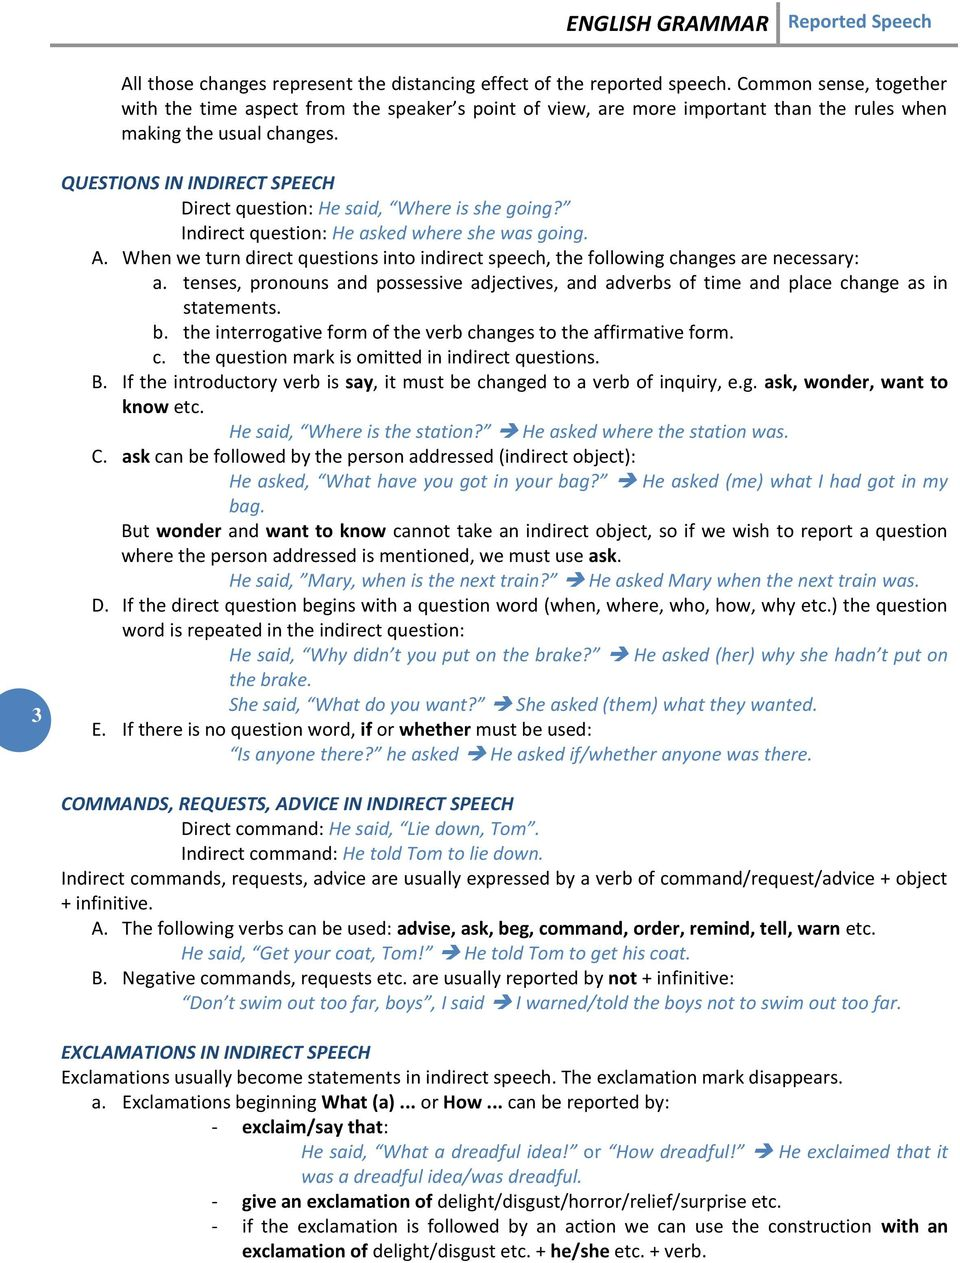 REPORTED SPEECH  ENGLISH GRAMMAR Reported Speech - PDF